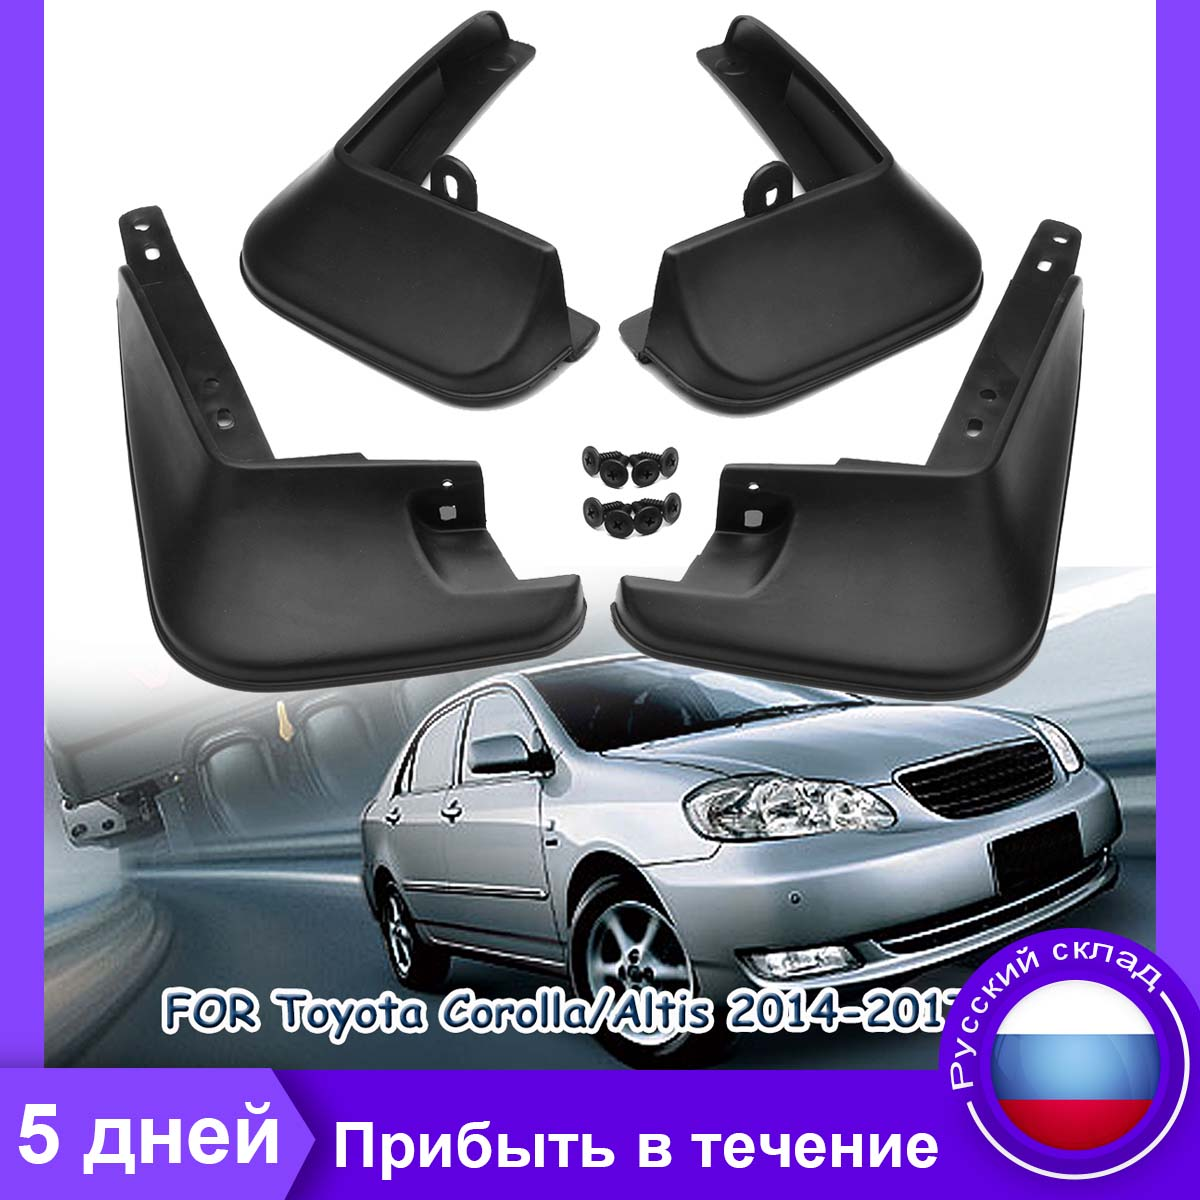 Car Mud Flaps for Toyota Corolla/Altis 2014 2015 2016 2017 Mudguards Splash Guards Front Rear Mudflaps Fender image